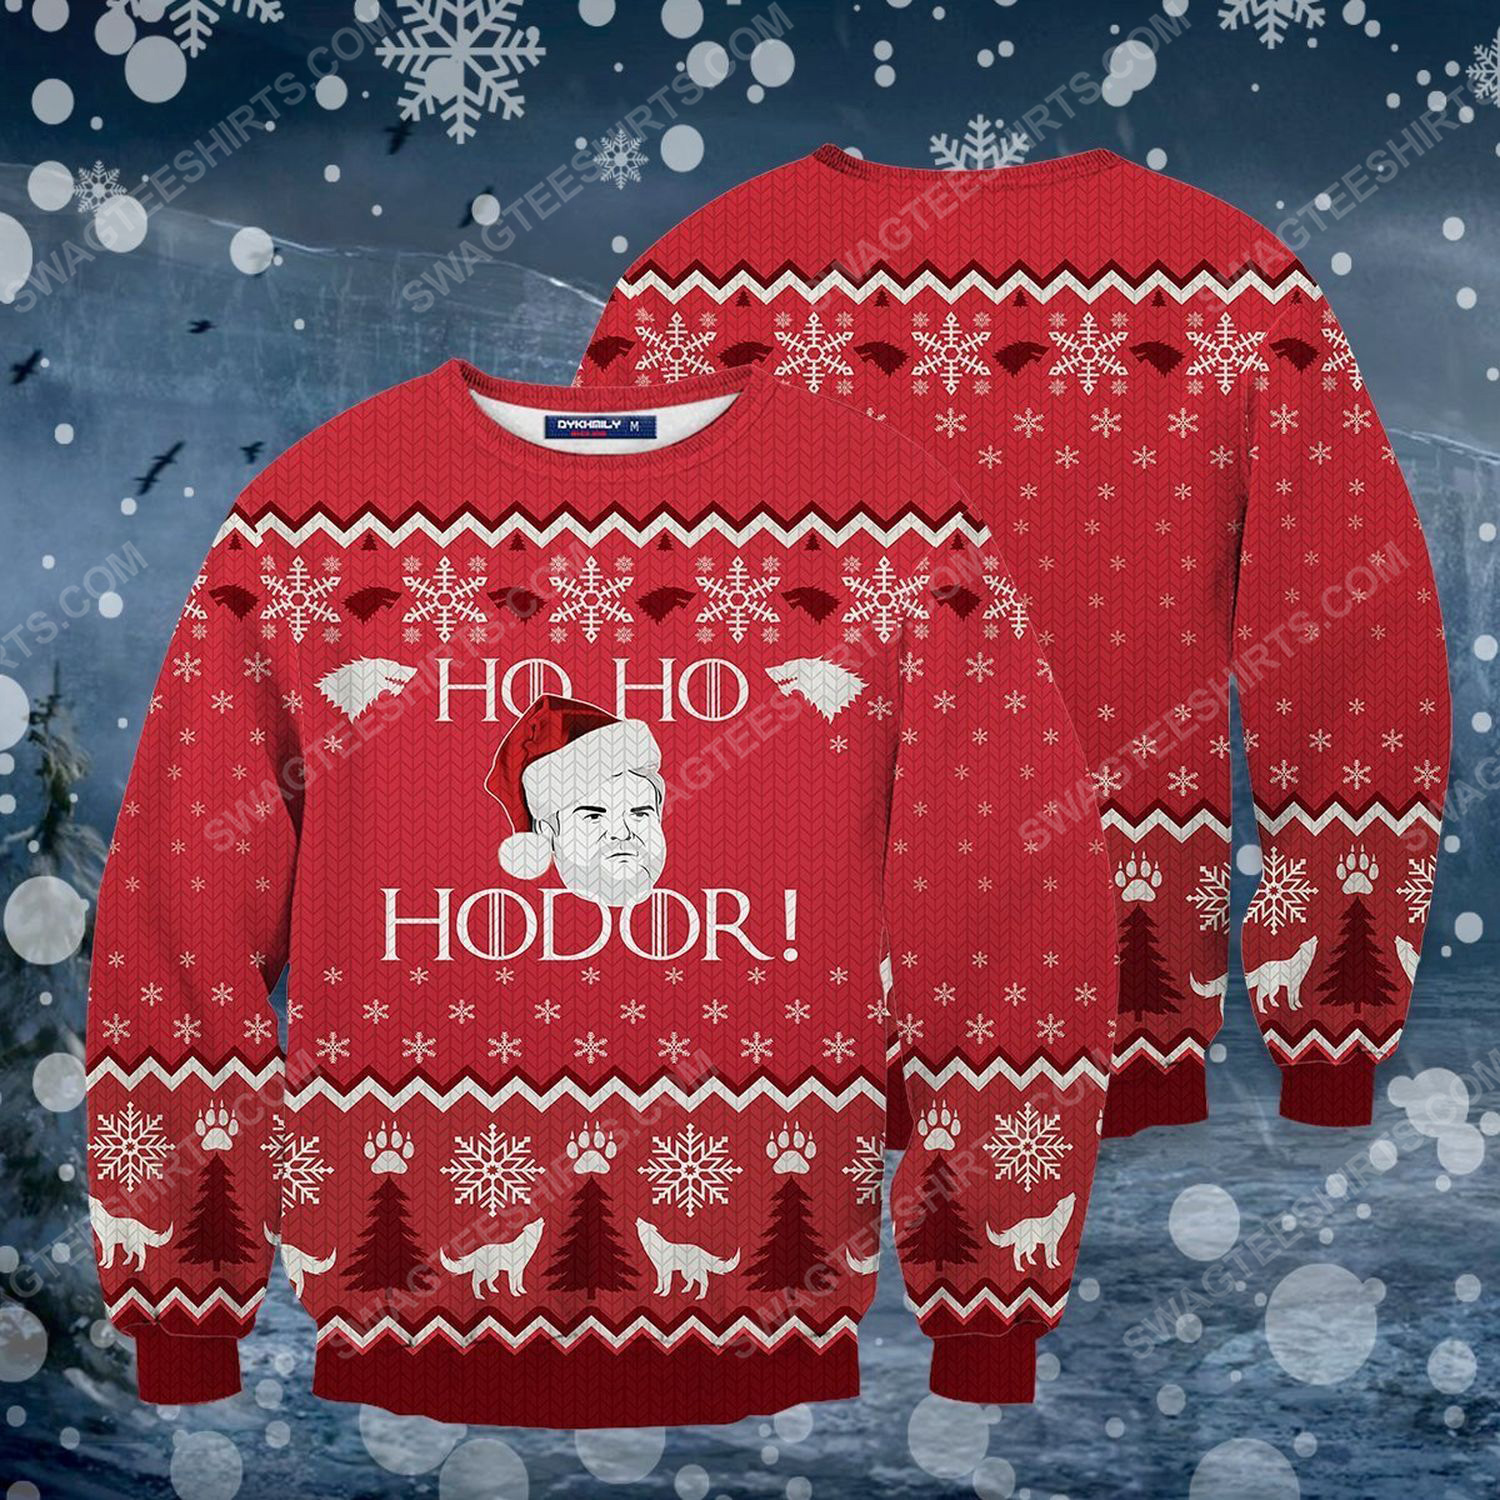 Ho ho hodor game of thrones ugly christmas sweater